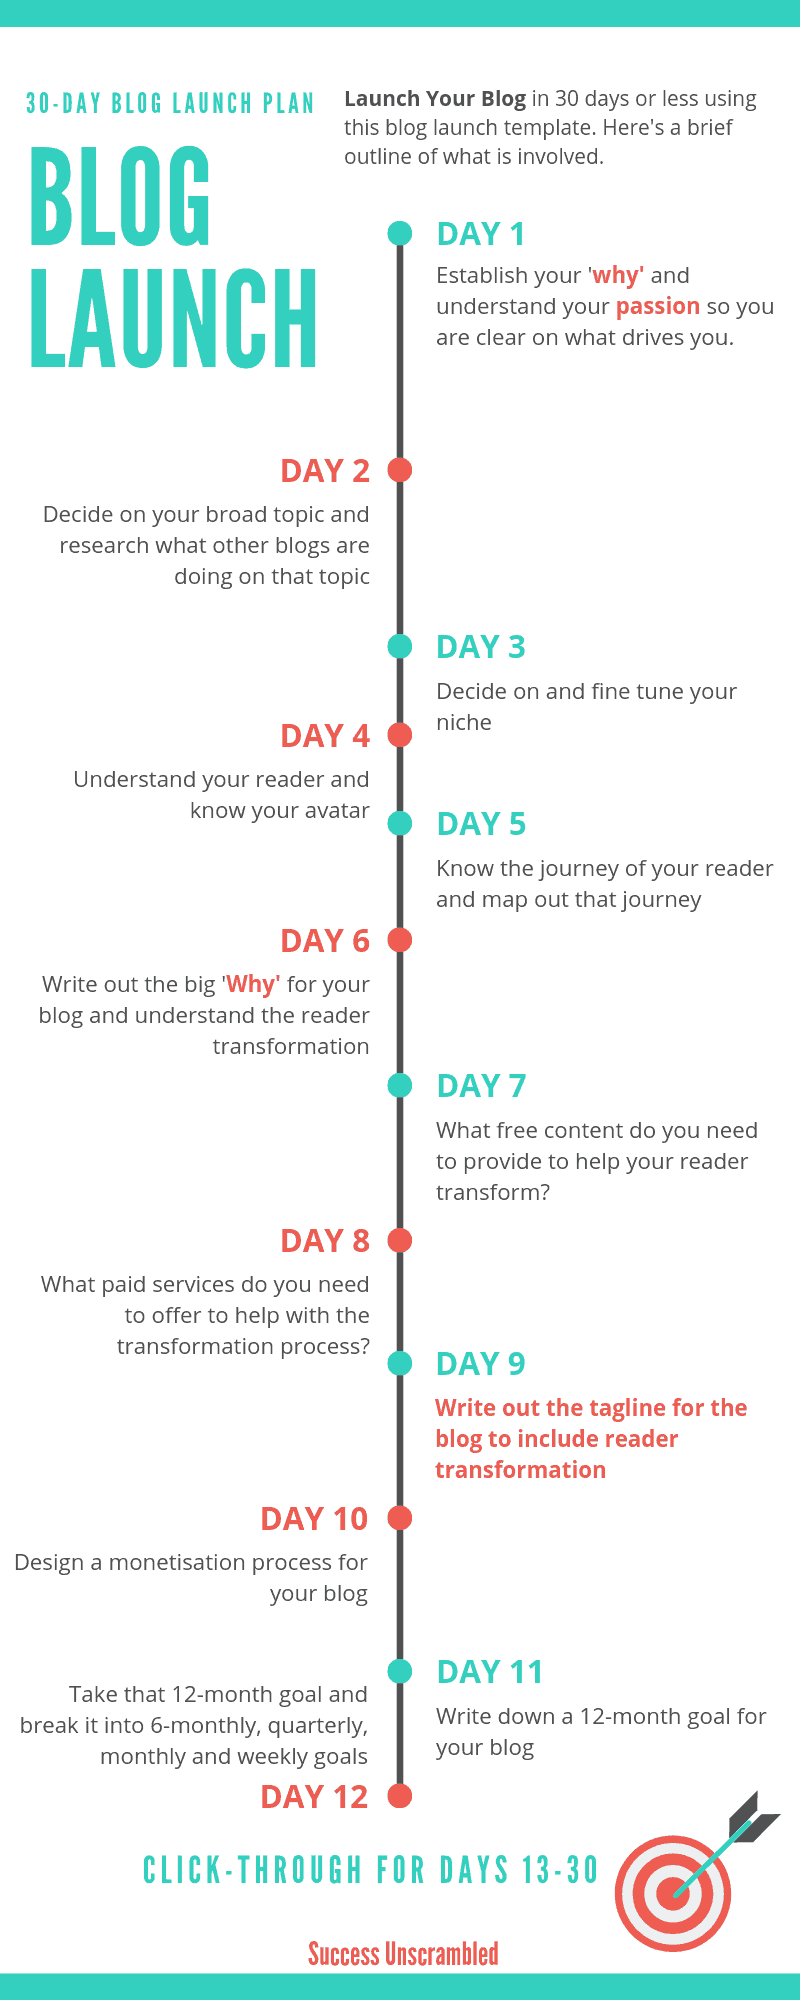 Blog Launch Plan - Infographic